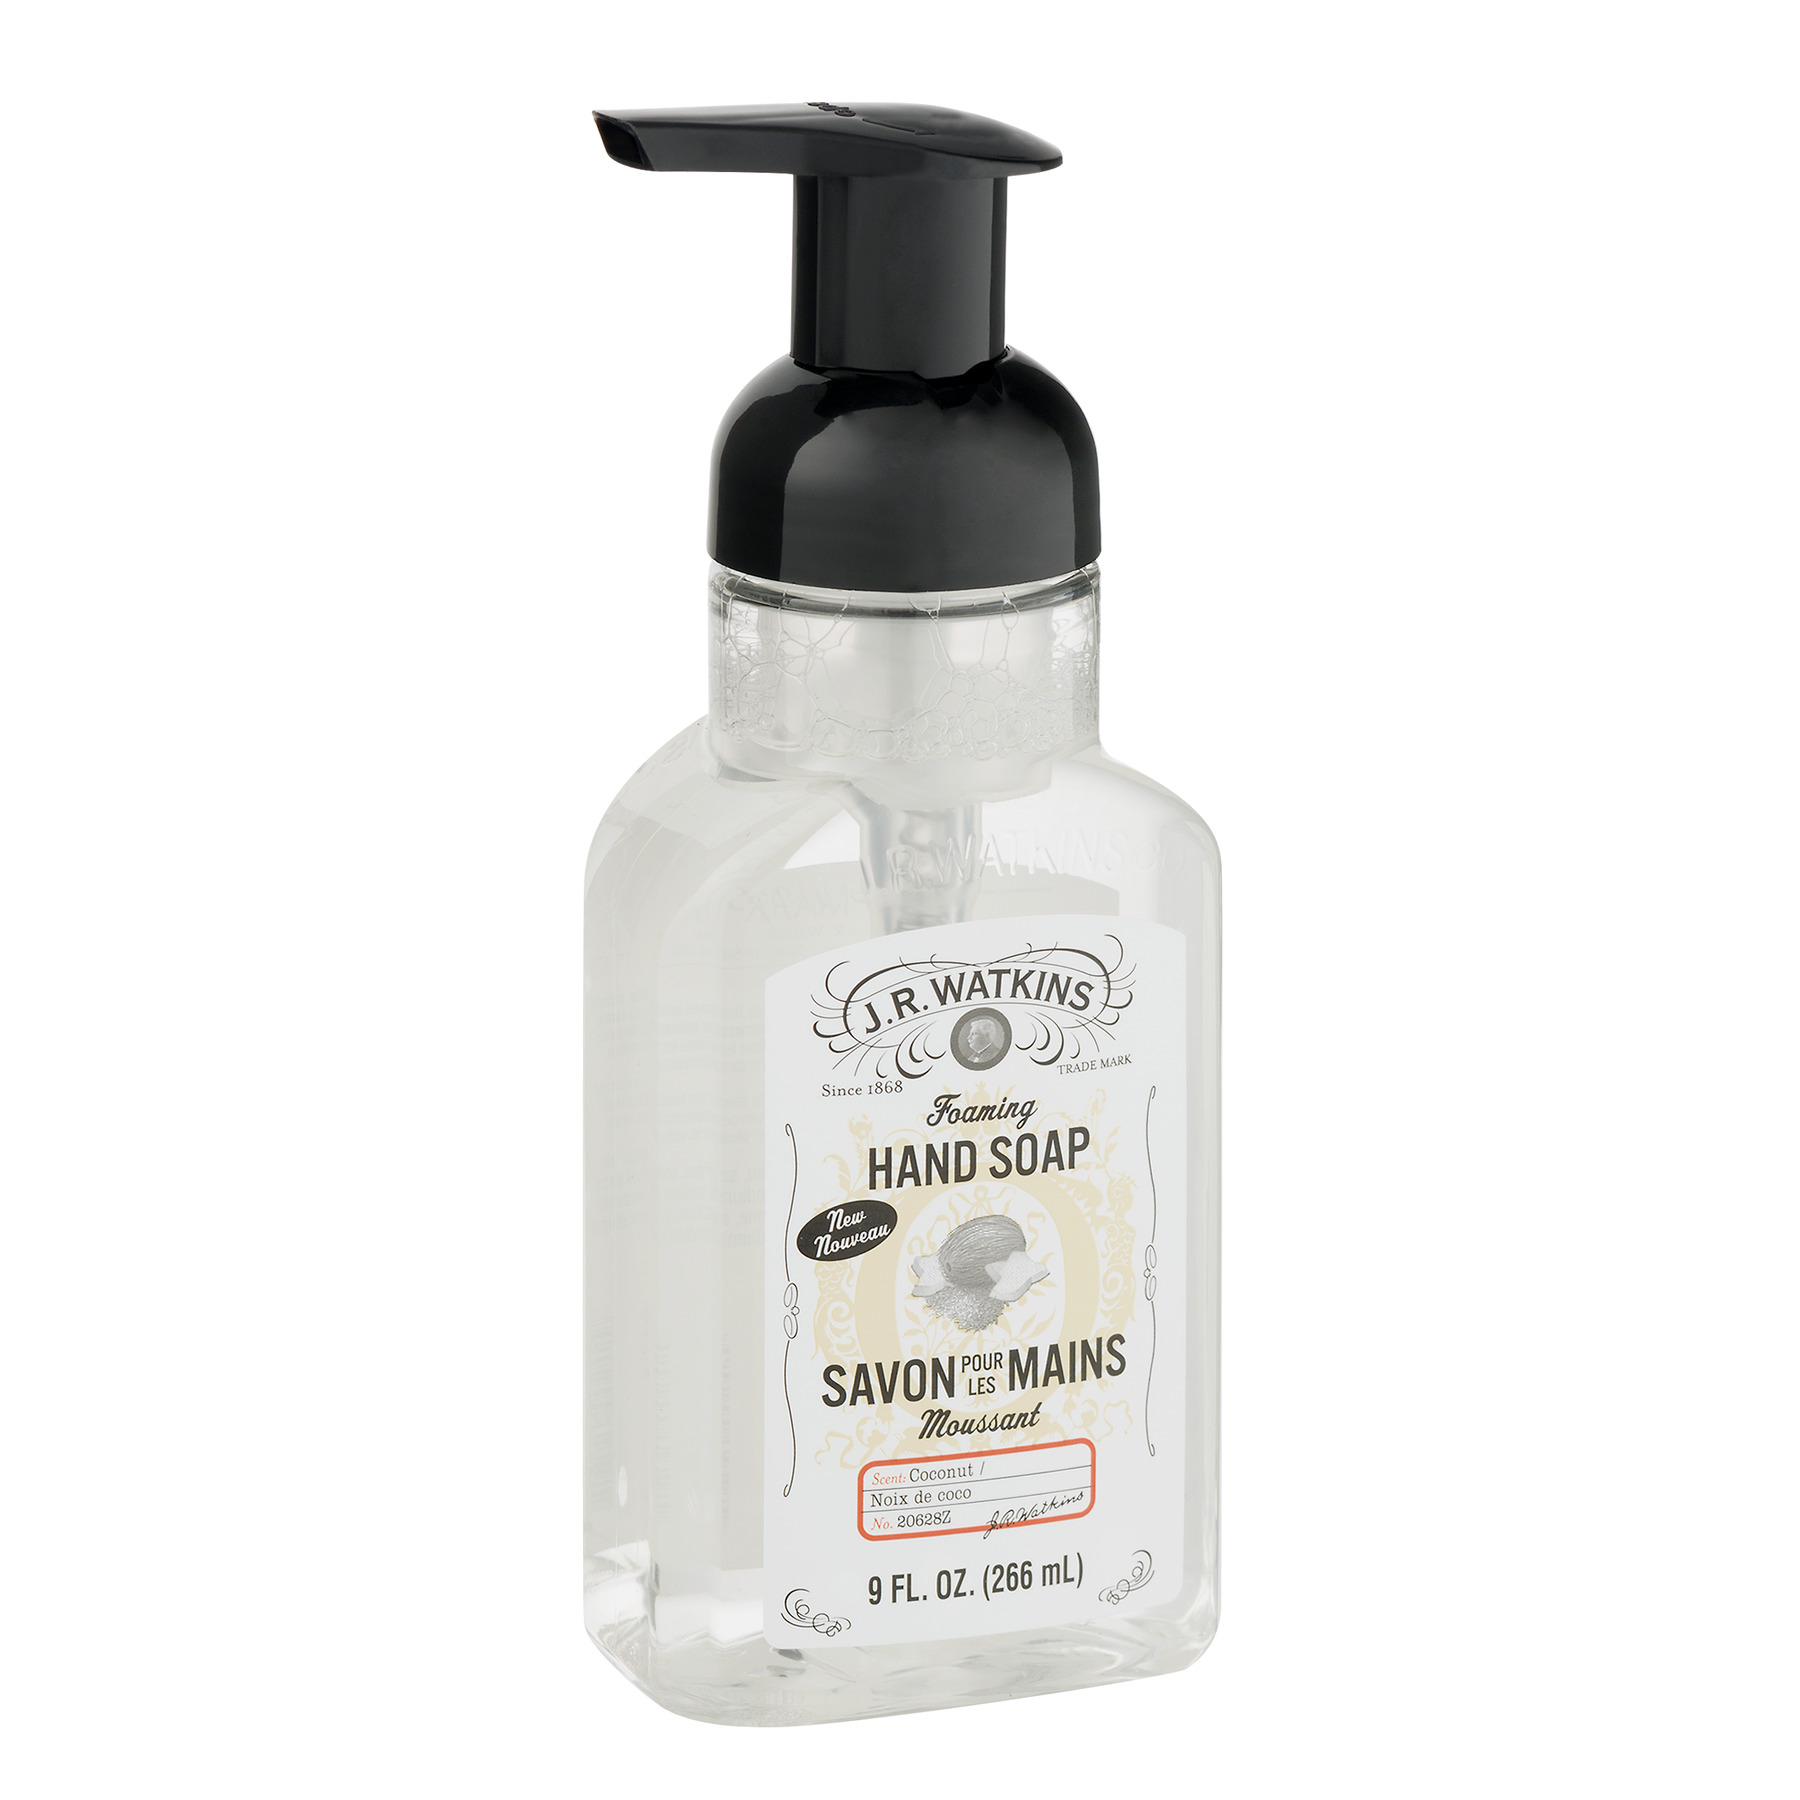 Unique Hand Soap Dispenser J R Watkins Foaming Hand Soap Coconut 9 Oz Pump Walmart